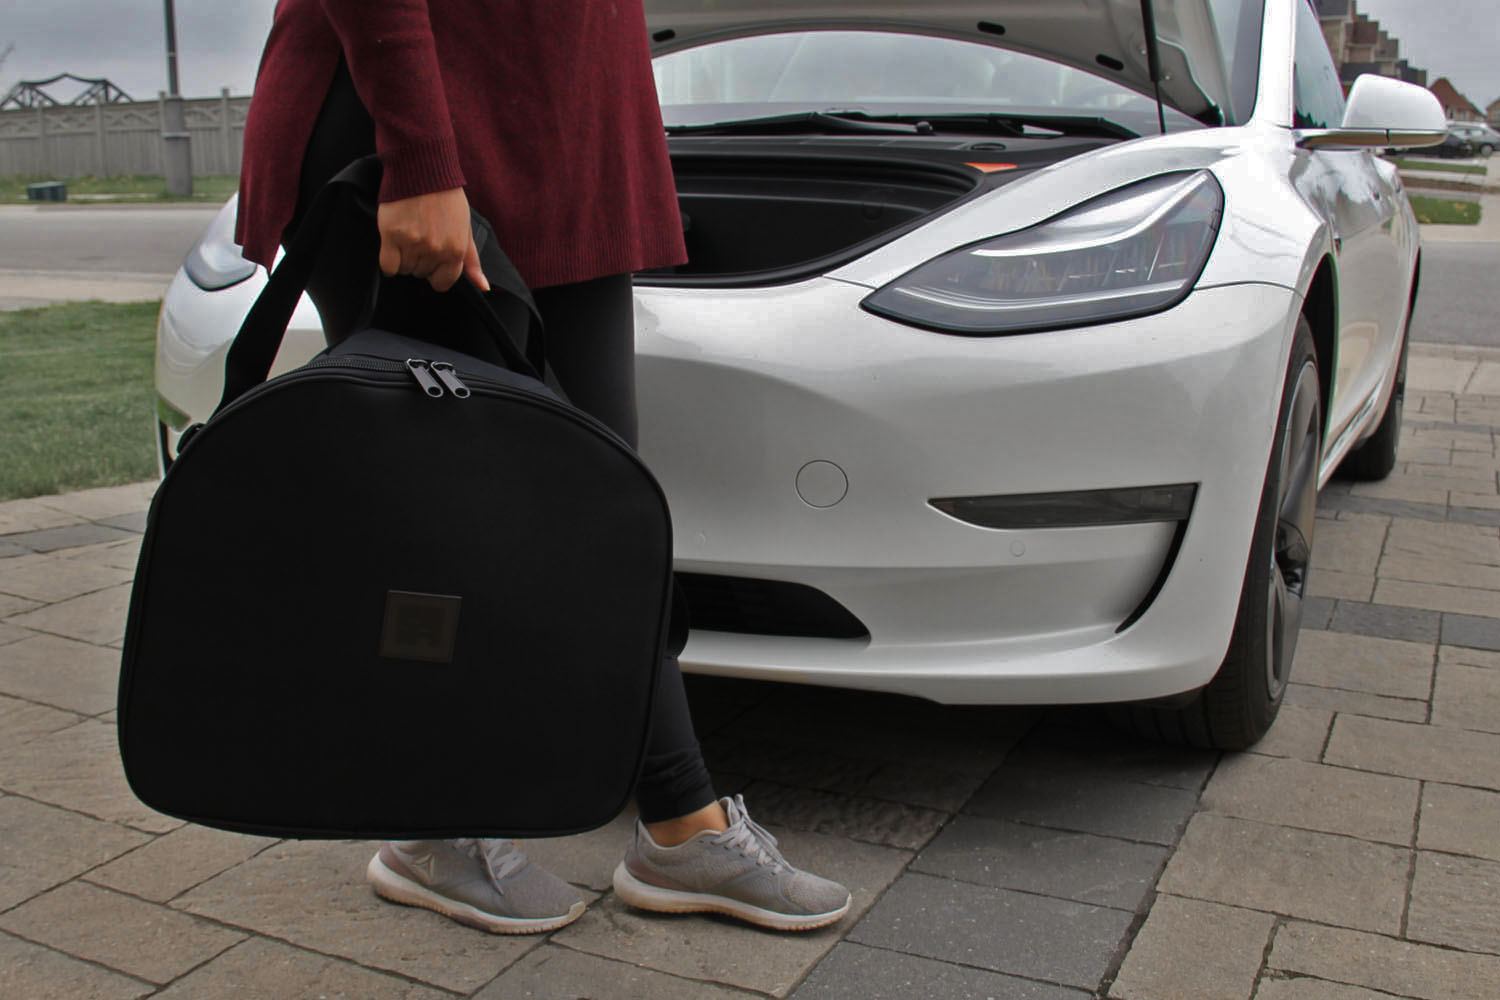 Model 3 luggage bag carry in trunk